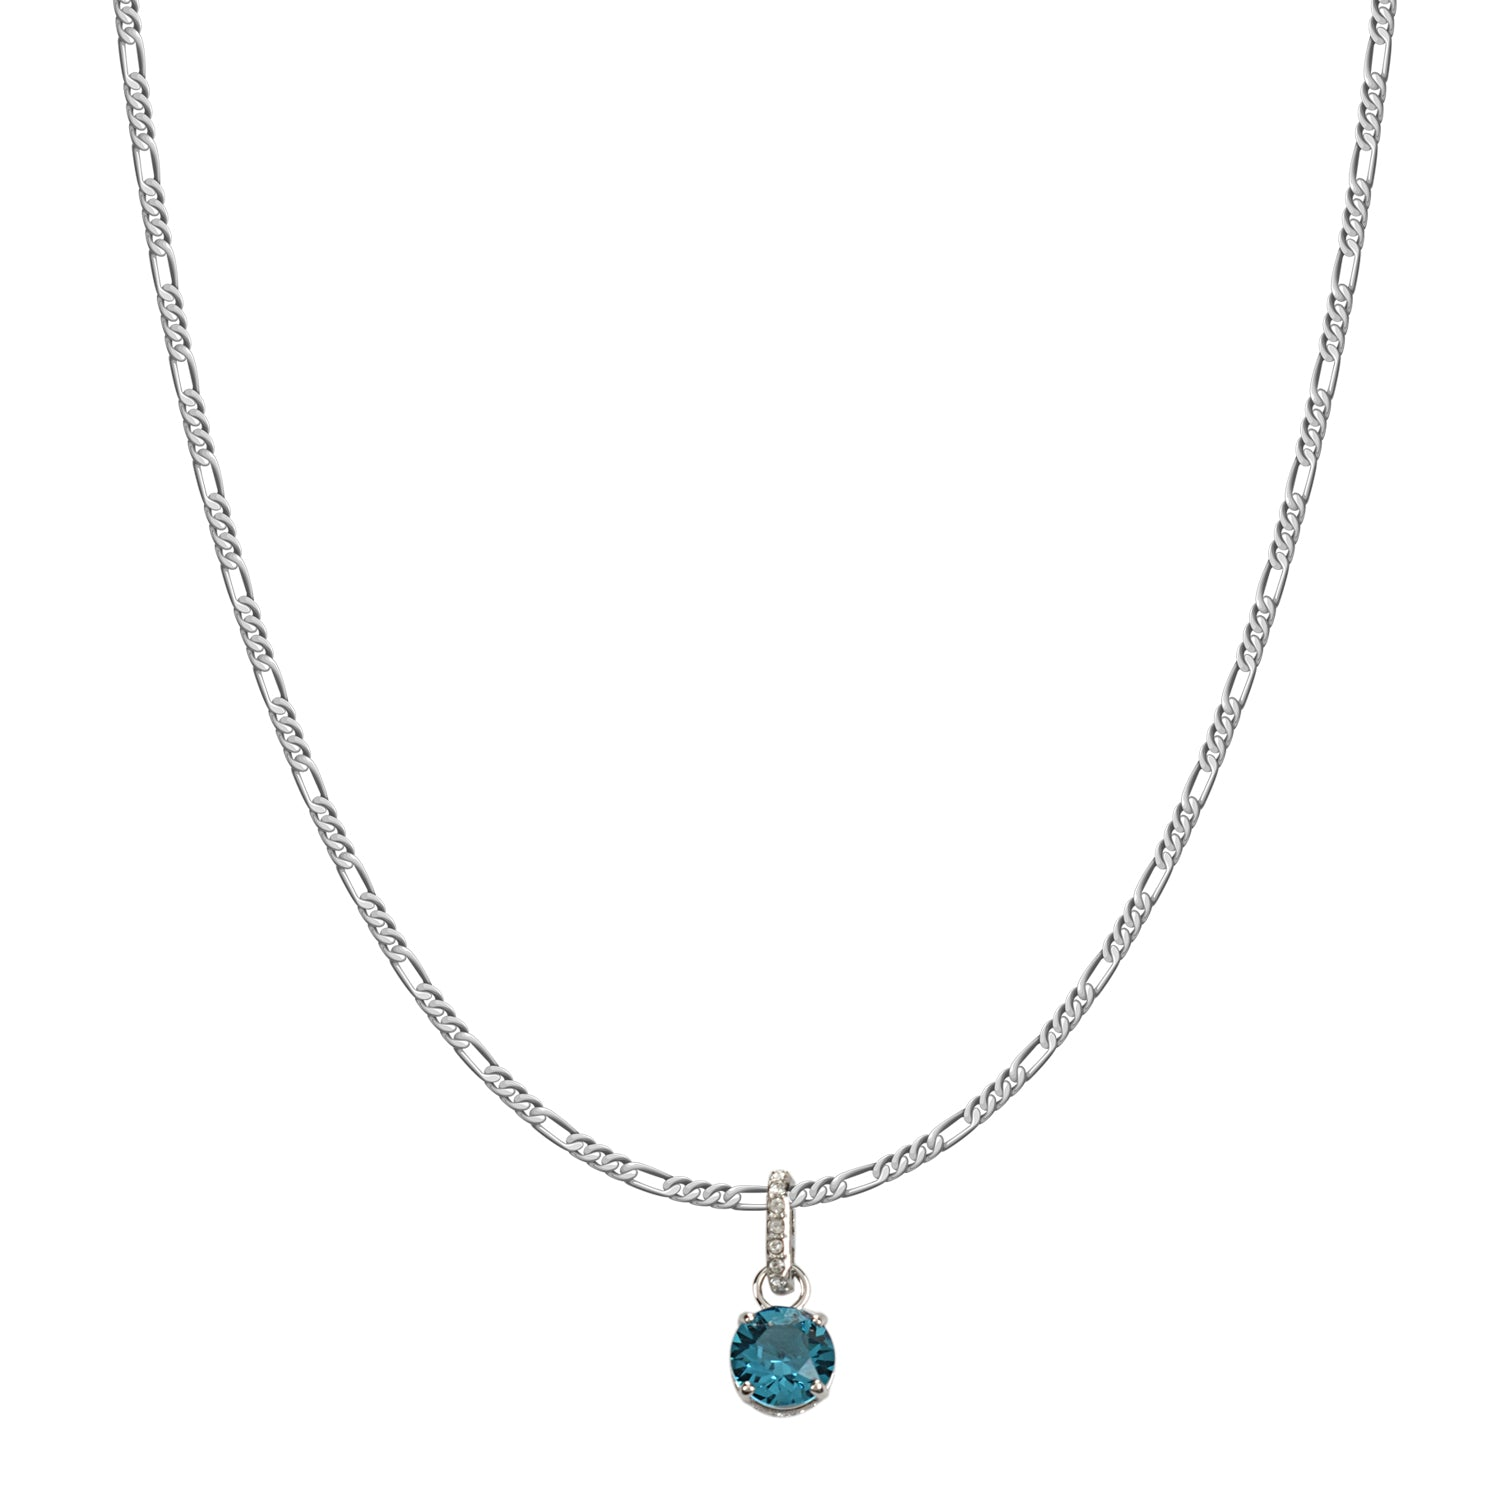 Swarovski Remix Collection Blue December Charm In Rhodium Plated | Shop Luxury Swarovski Charm Online